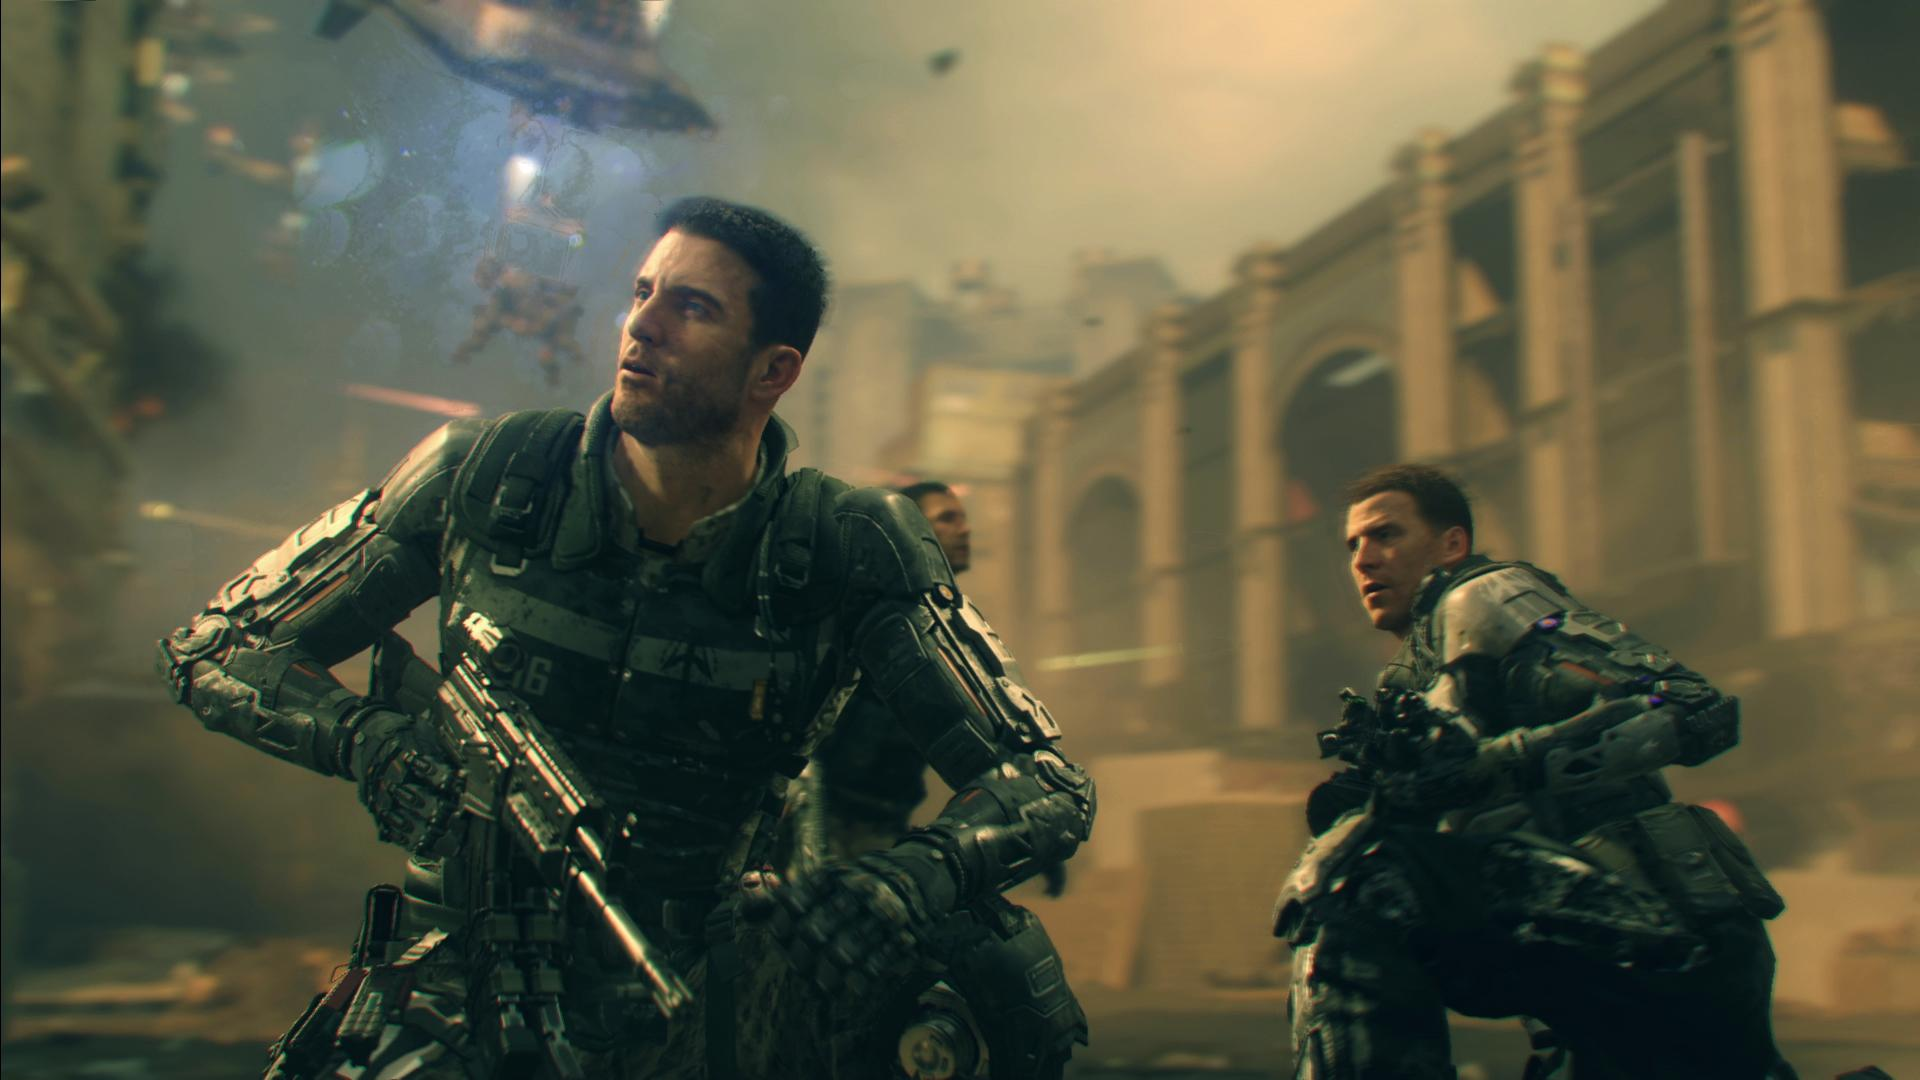 Image Media for Call of Duty Black Ops III Story Trailer